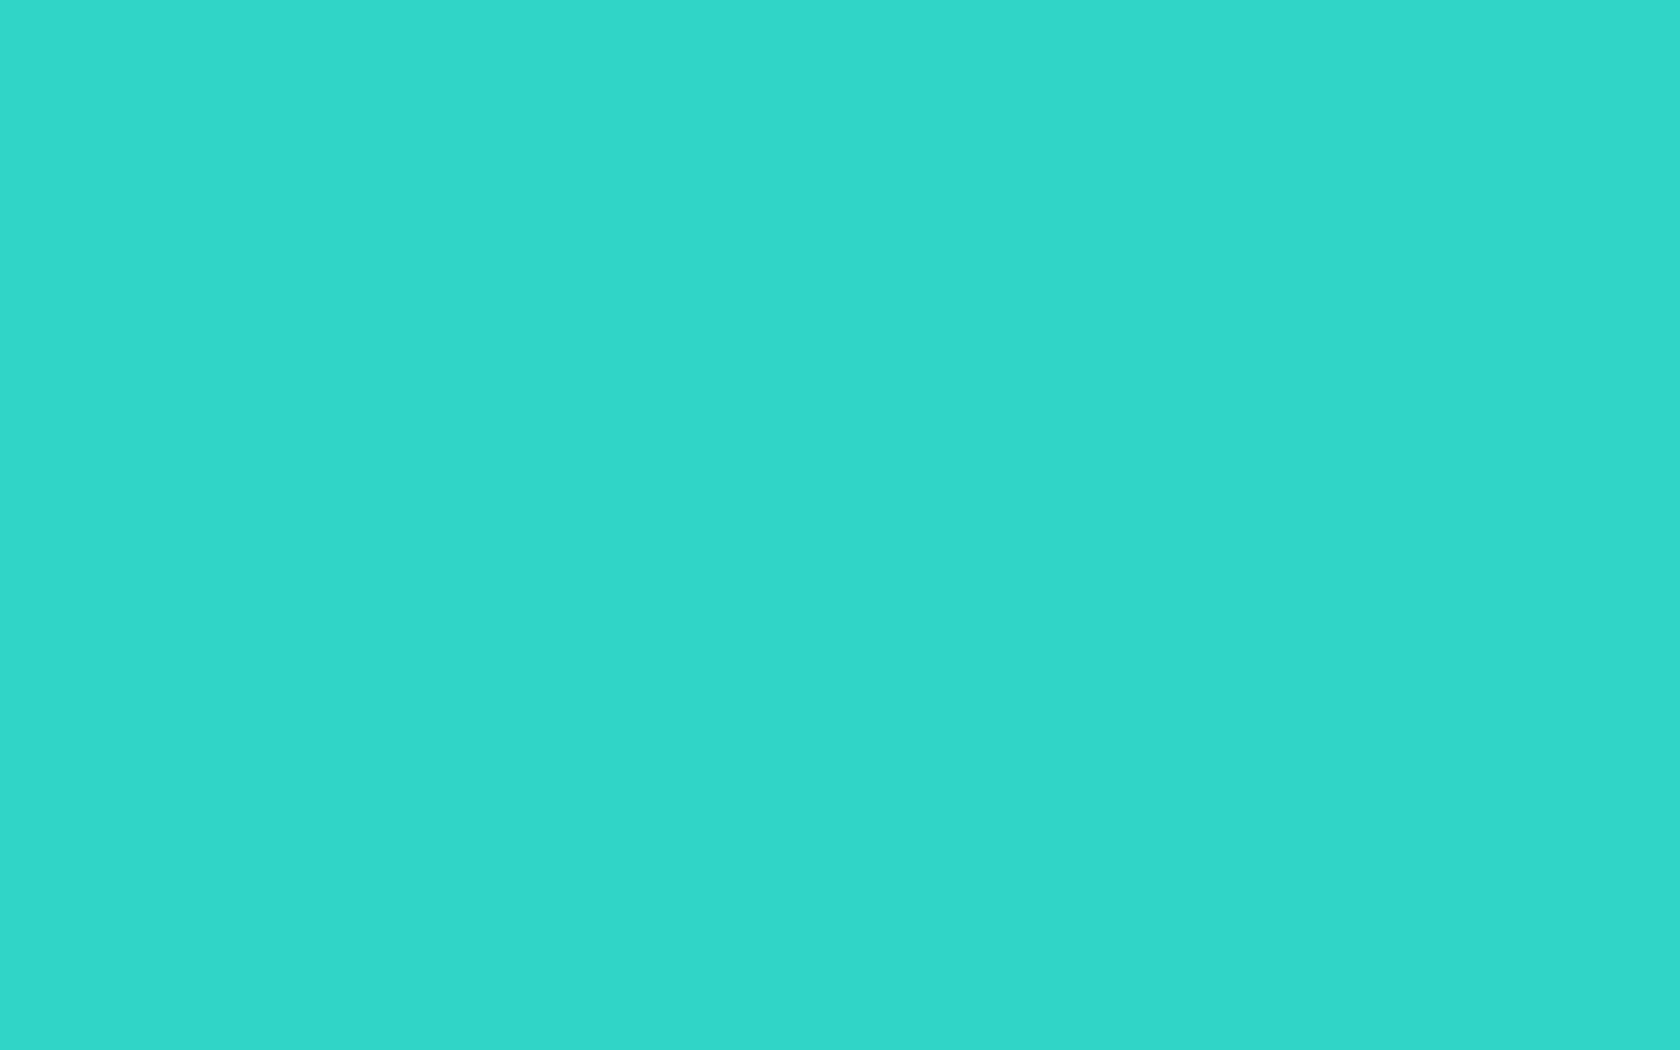 1680x1050 Turquoise Solid Color Background